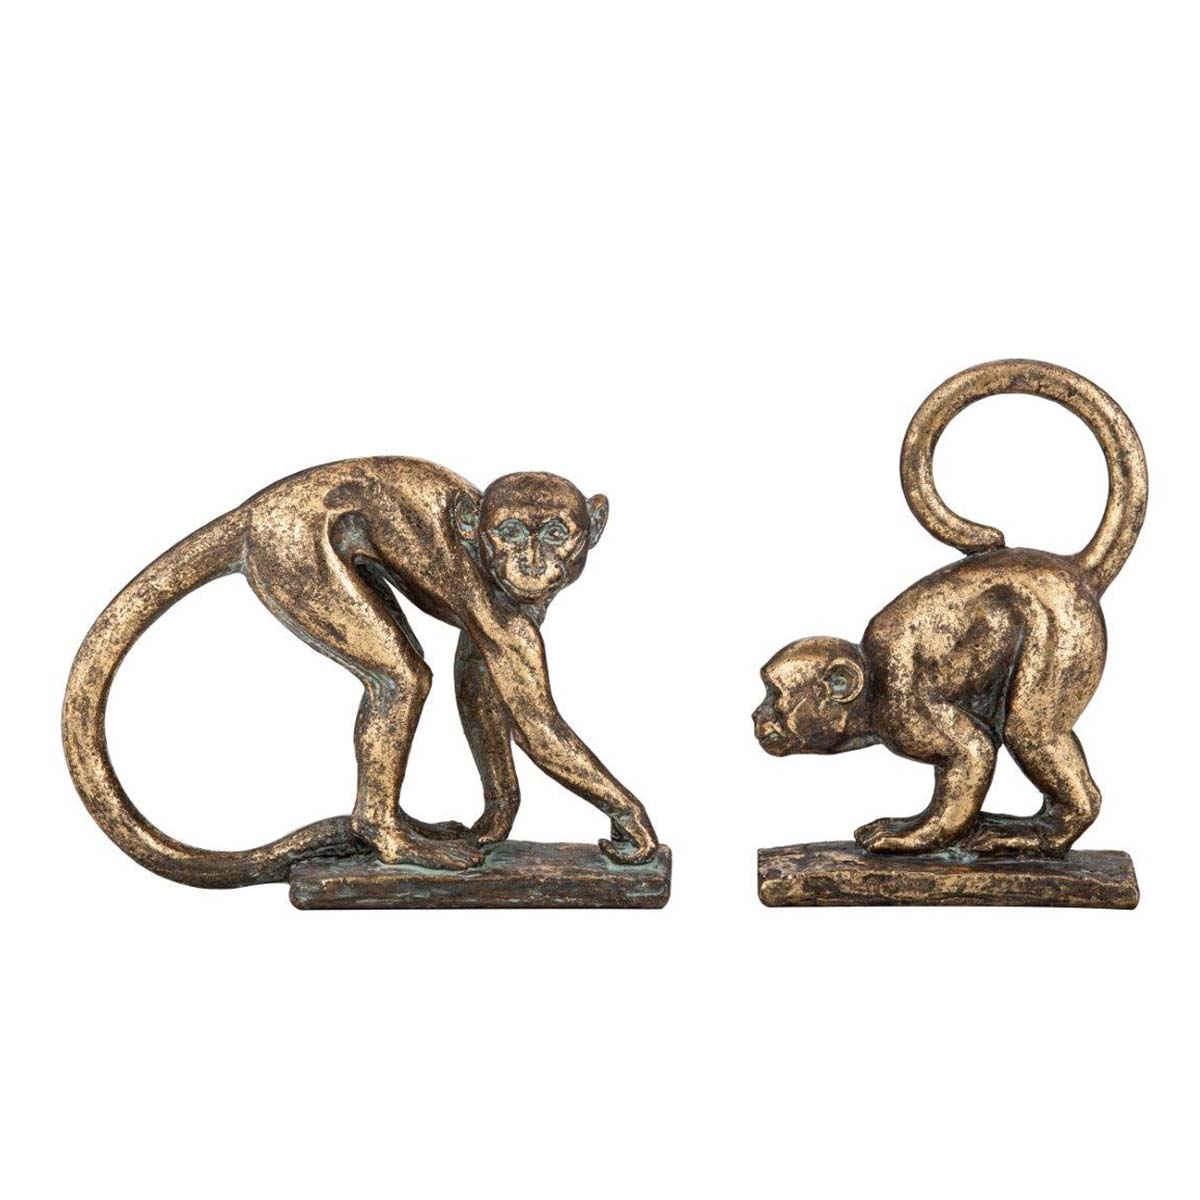 MONKEY SCULPTURE SET OF 2 in gold